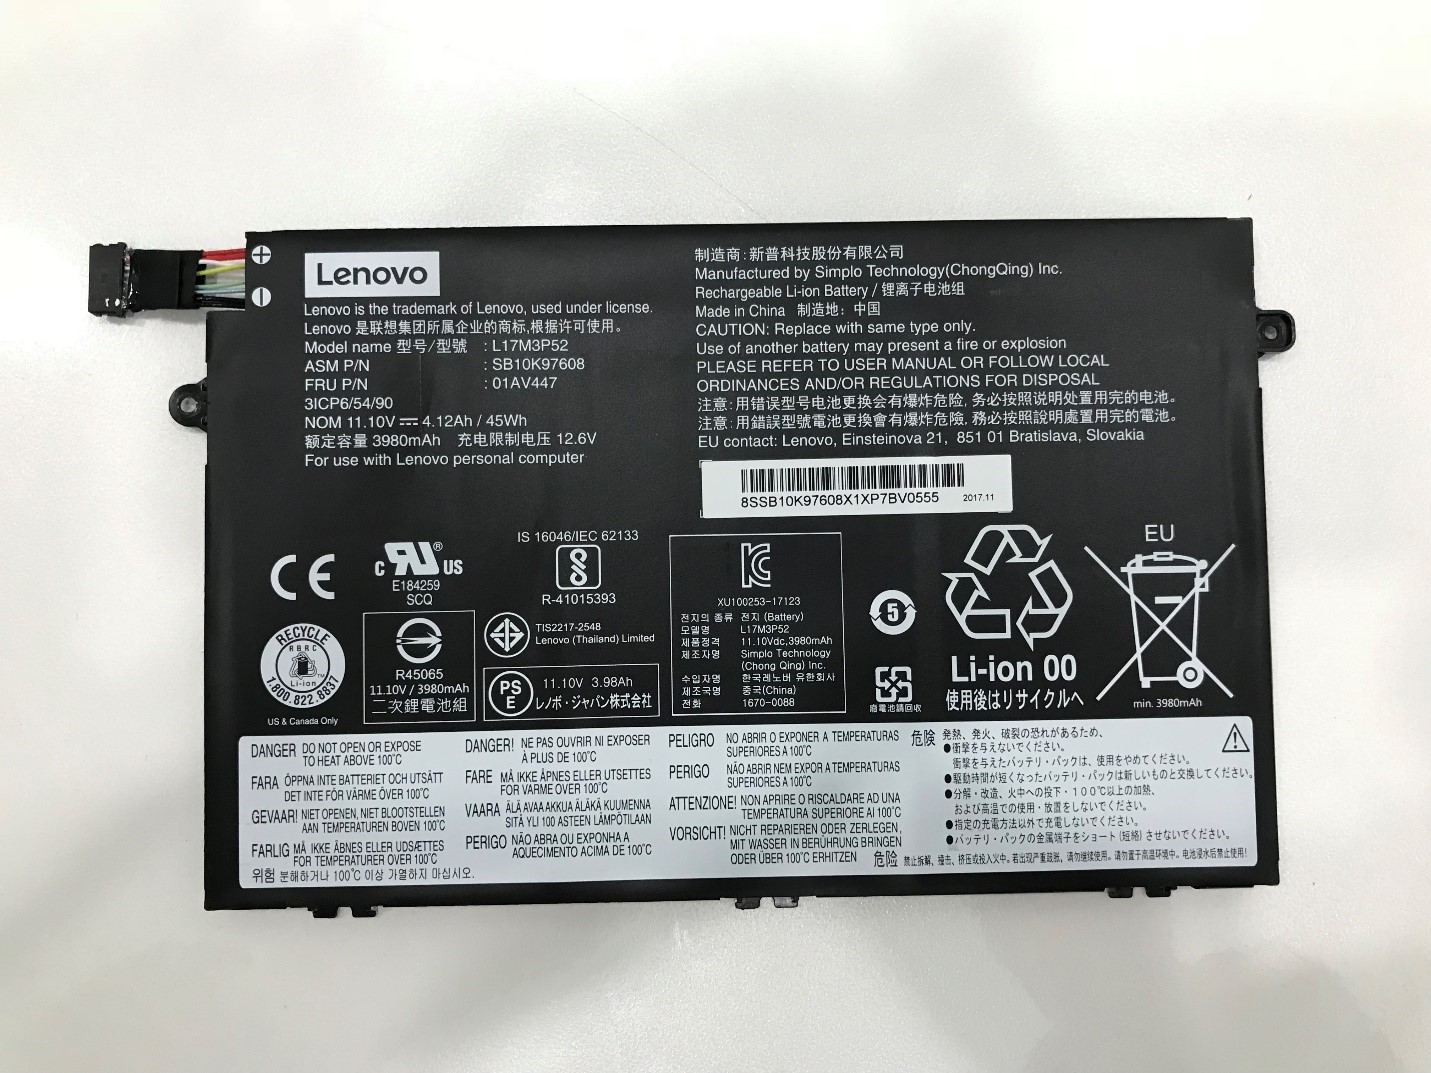 Lenovo ThinkPad E480 Teardown and RAM, SSD, HDD upgrade